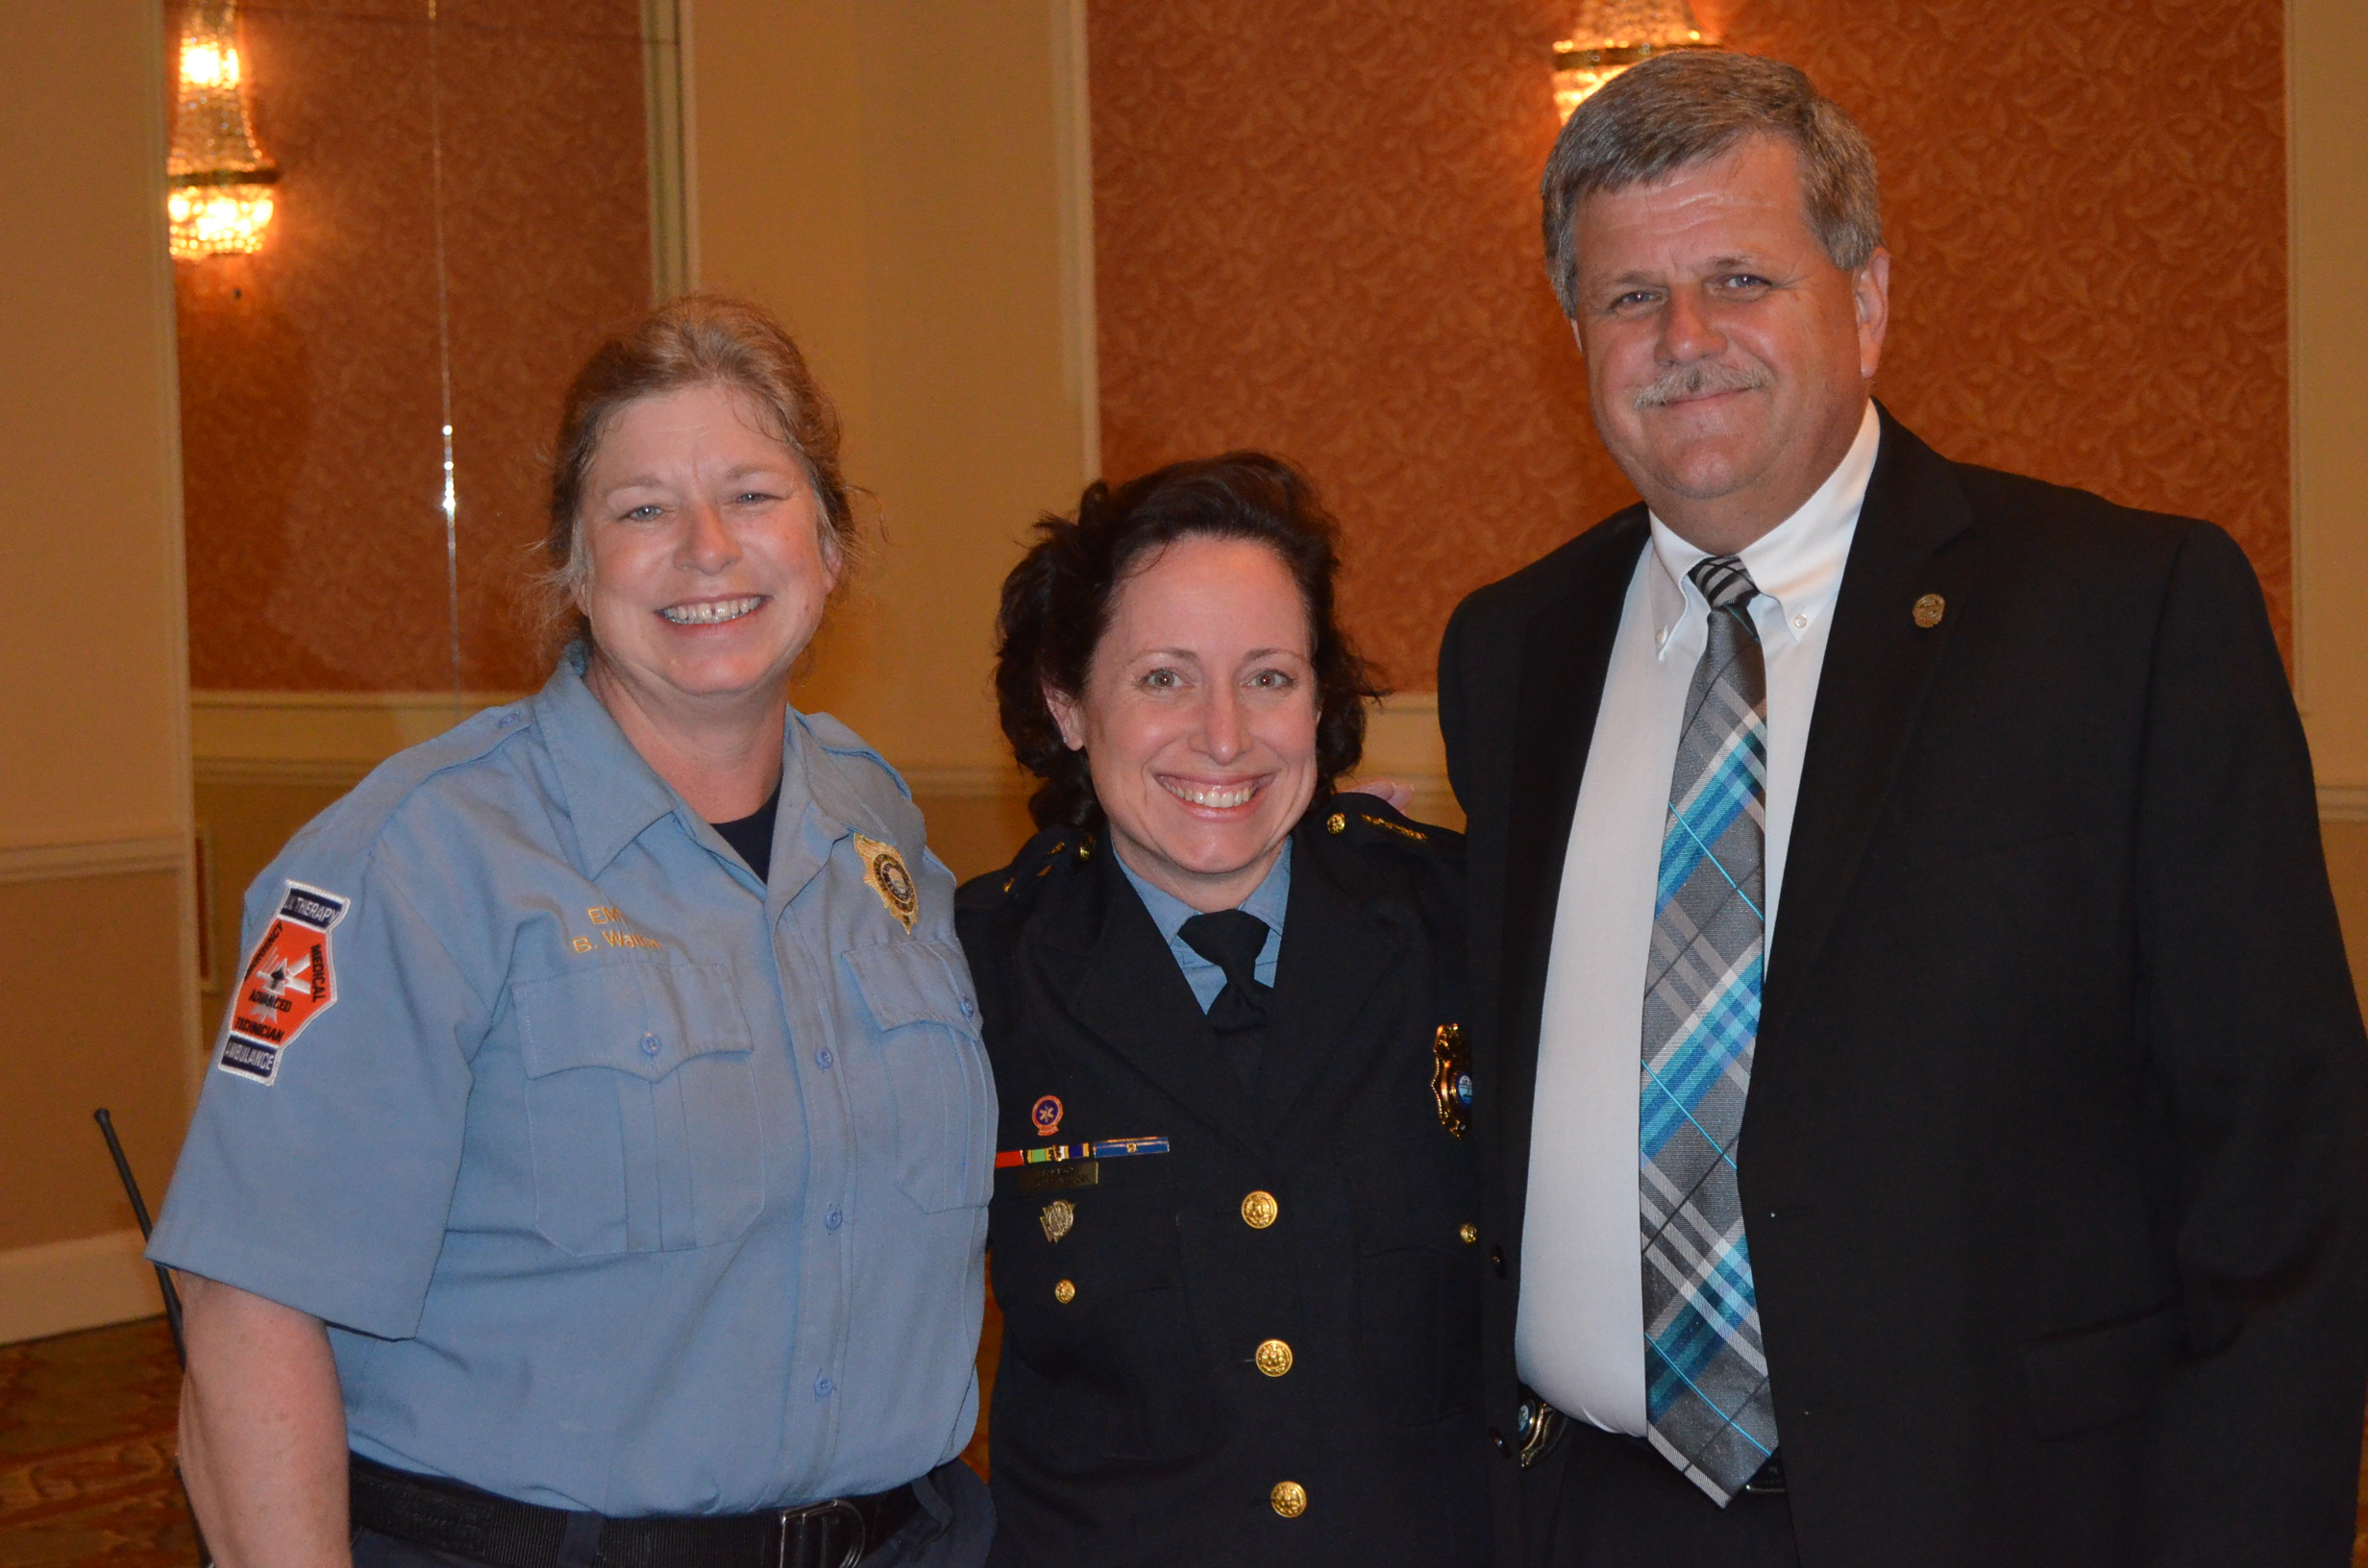 2014 AEMT and Paramedic of the Year